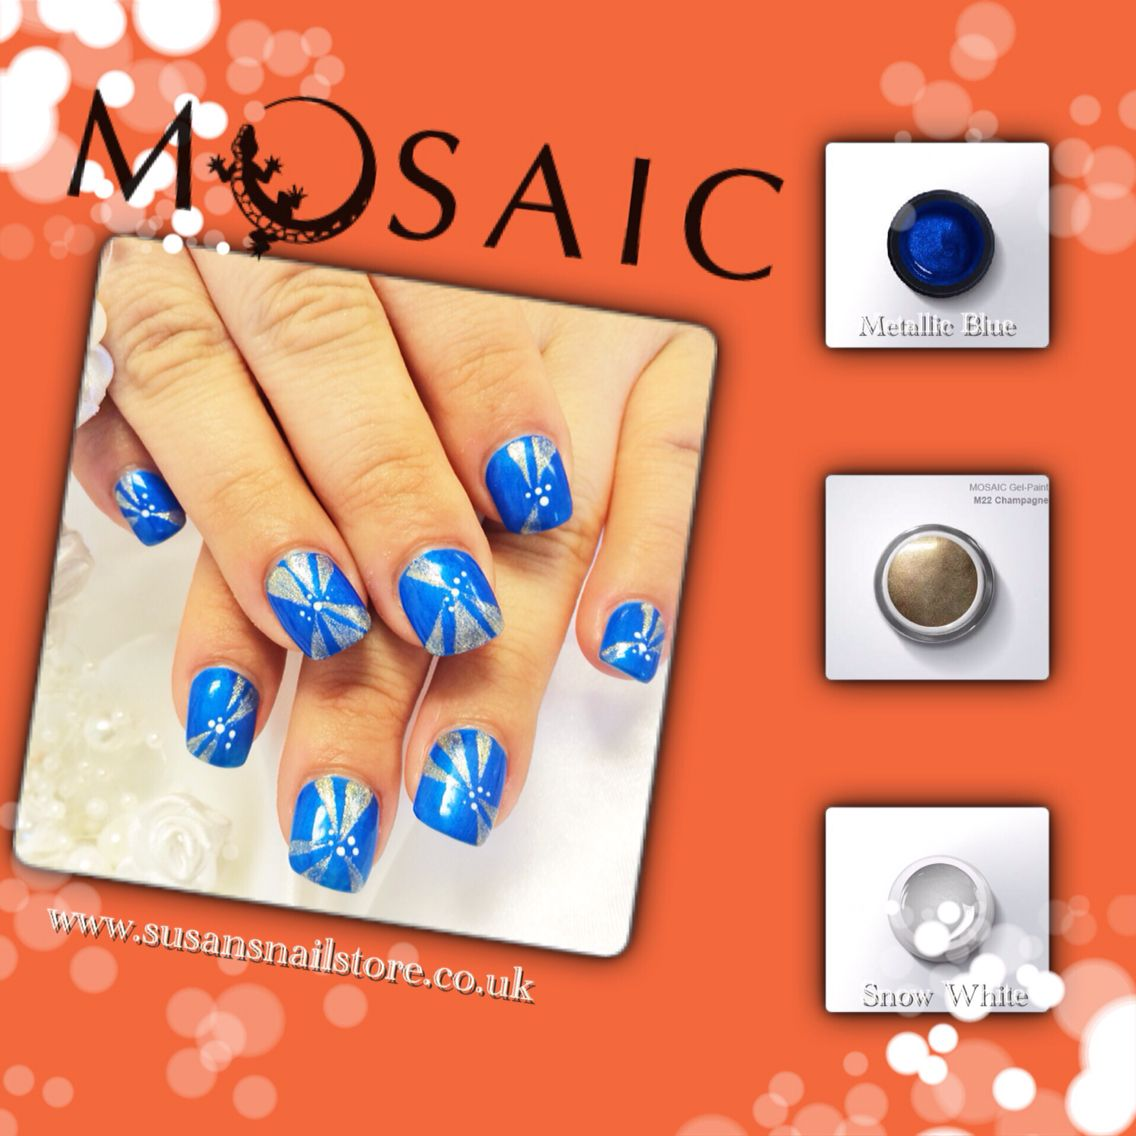 Mosaic gel paints are very high pigmented paints! Most of